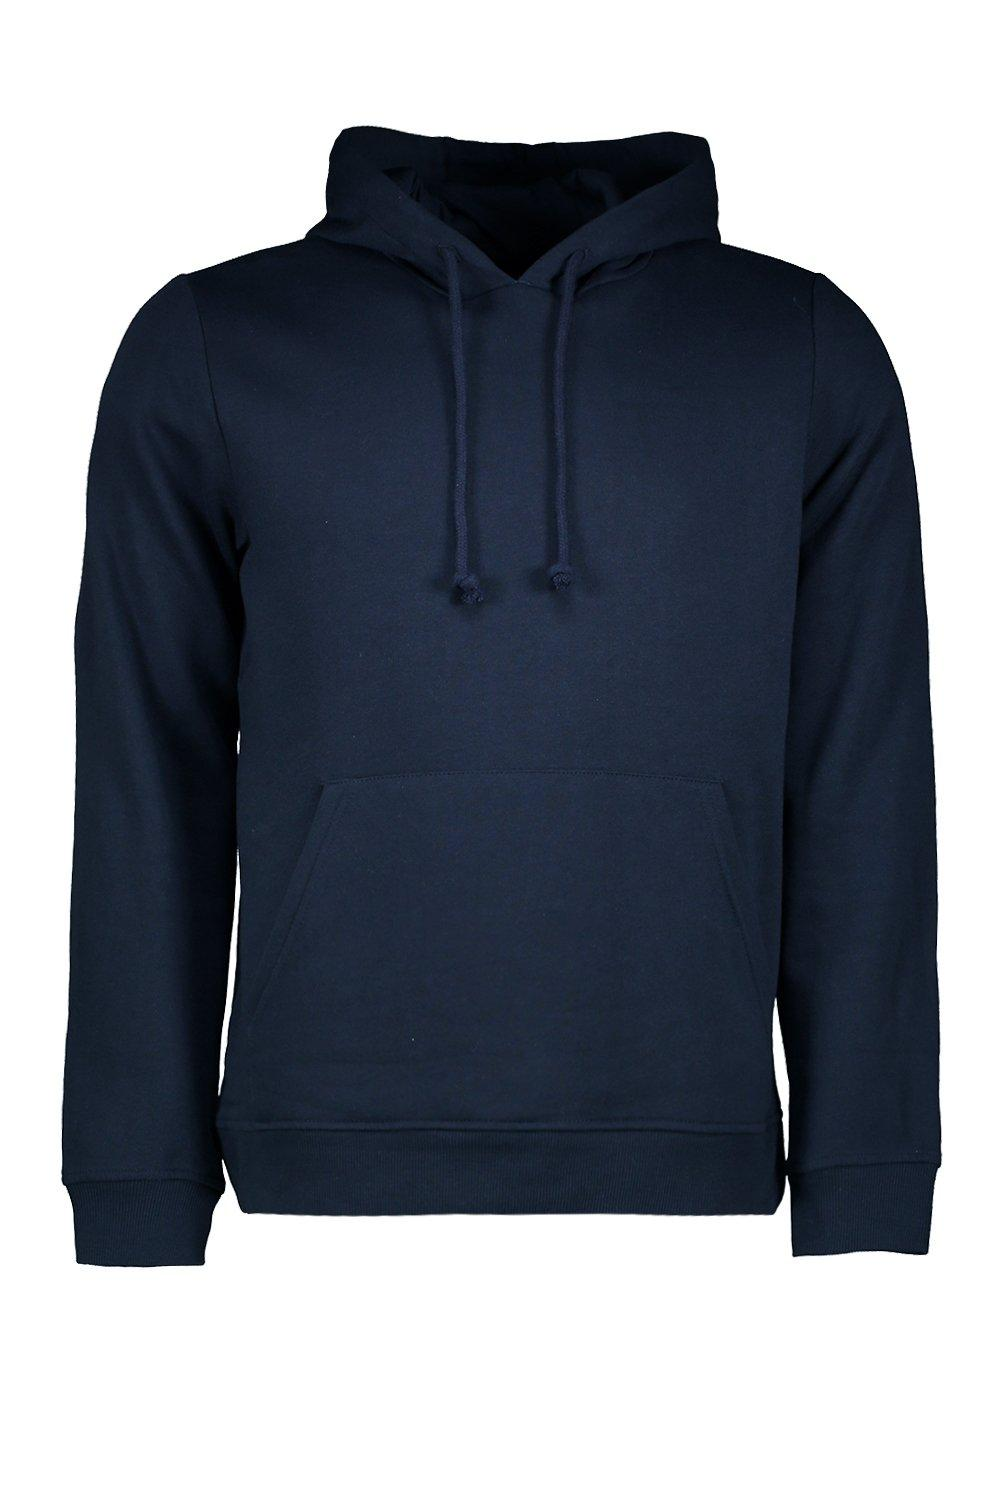 boohooMAN navy Basic Over The Head Hoodie